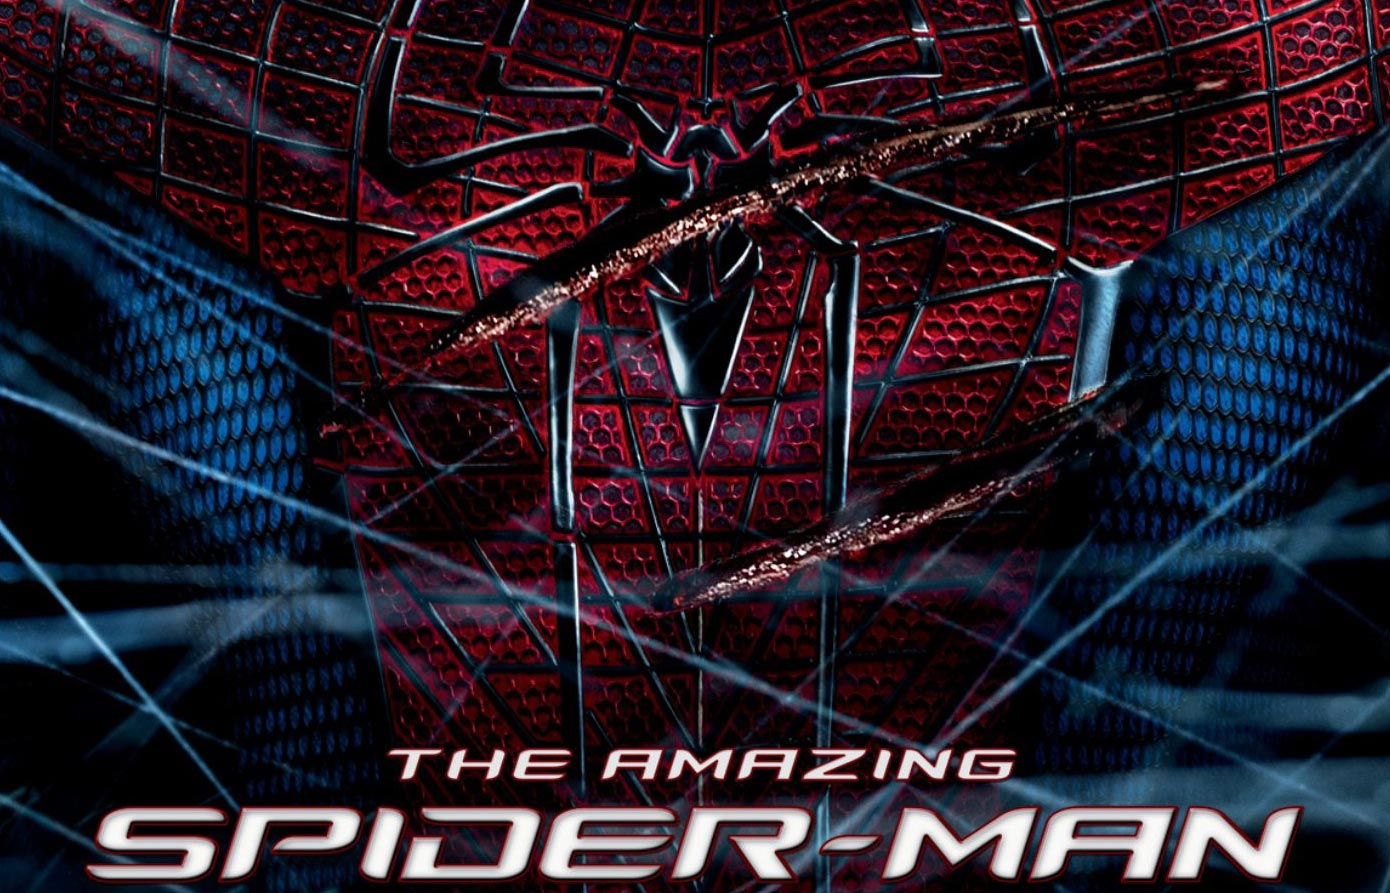 the amazing spider man movie wallpapers - The Amazing Spider Man 2 Entertainment Wallpaper